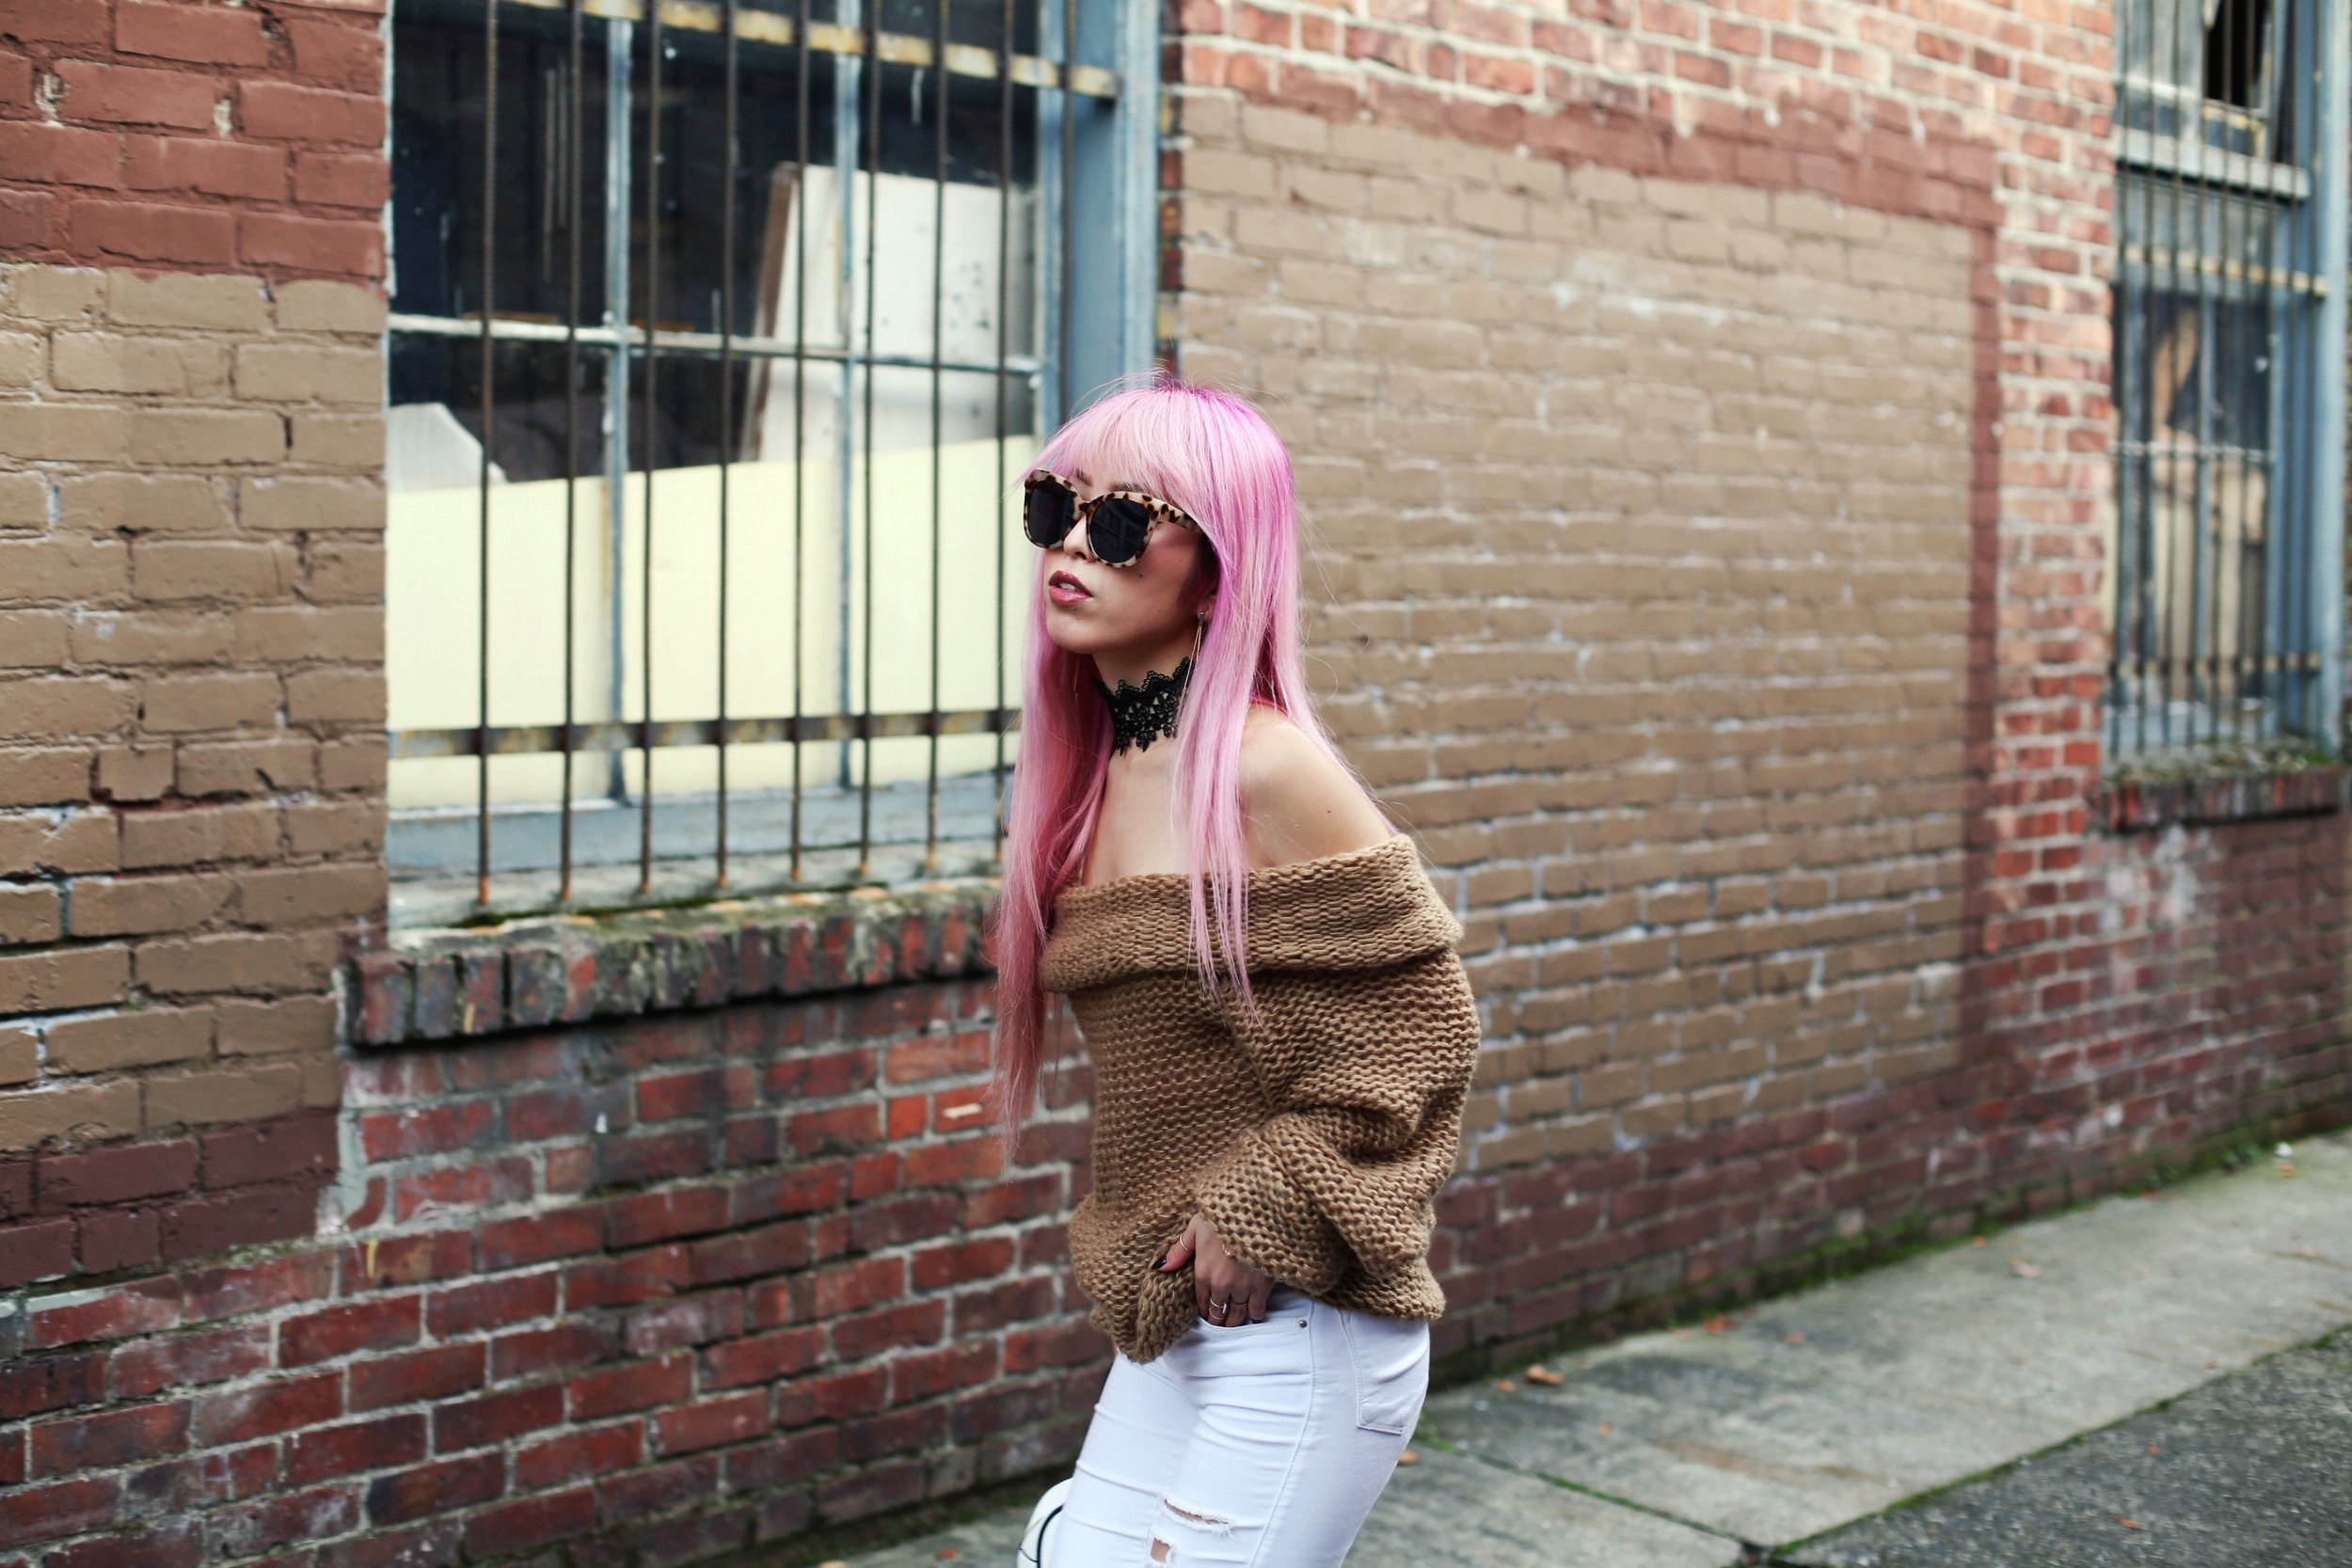 Urban Outfitters Sunglasses_Camel Off The Shoulder Sweater_TOPSHOP white jeans_ZARA Bag_ASOS Snake Skin Heels_Shop Dixi Lace Choker_Aika's Love Closet_Seattle Fashion Blogger_Japanese_Pink Hair_Colored Hair 9